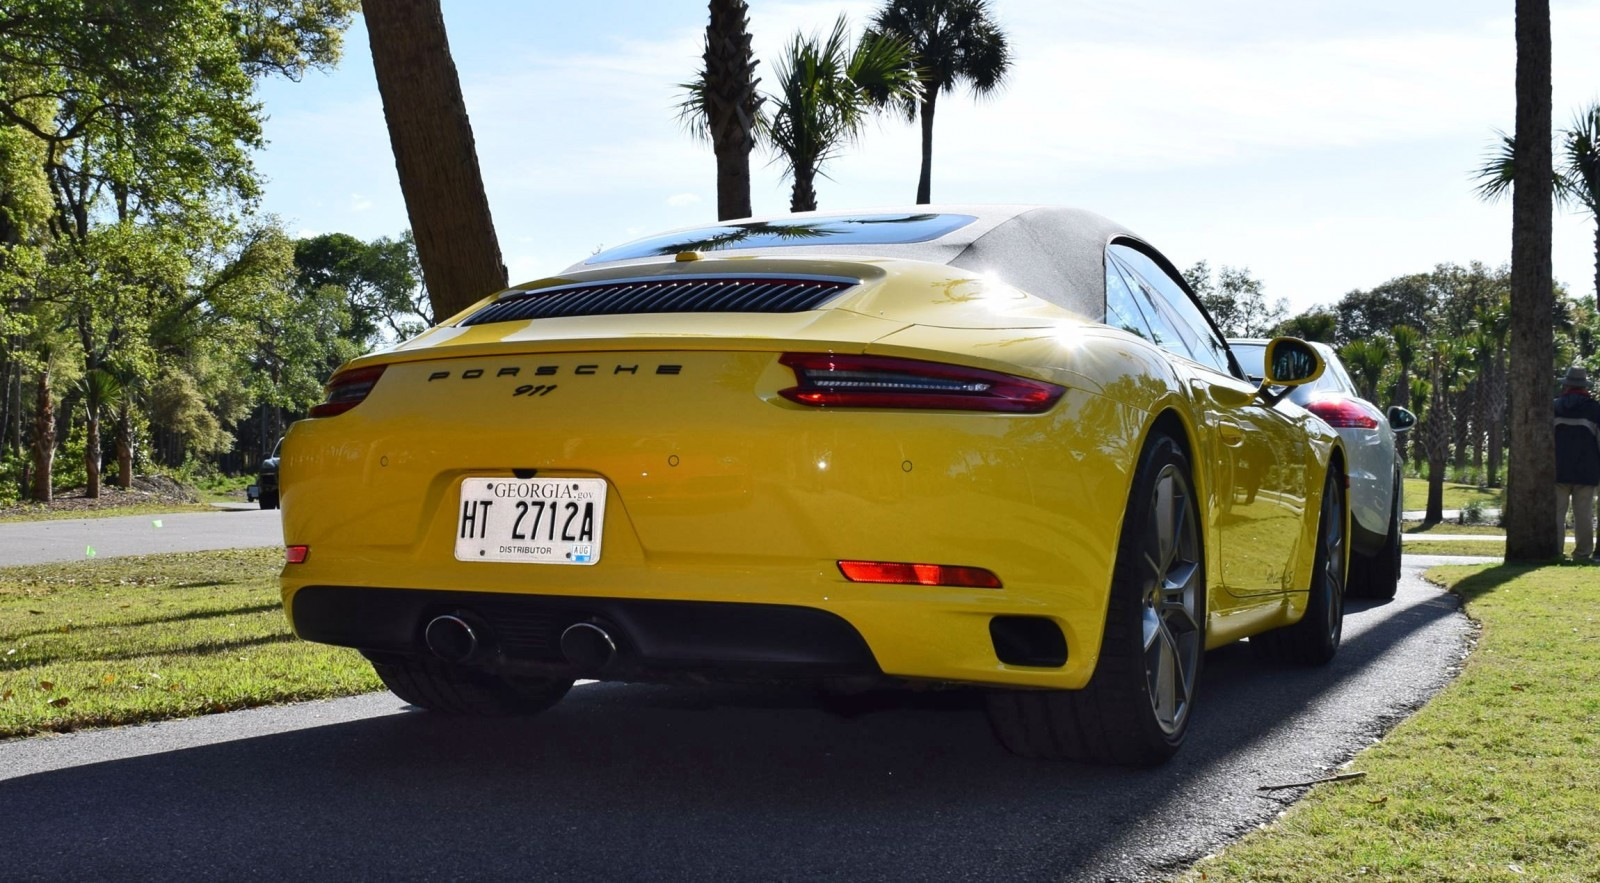 2017 Porsche 911 Carrera S – RACE YELLOW 14